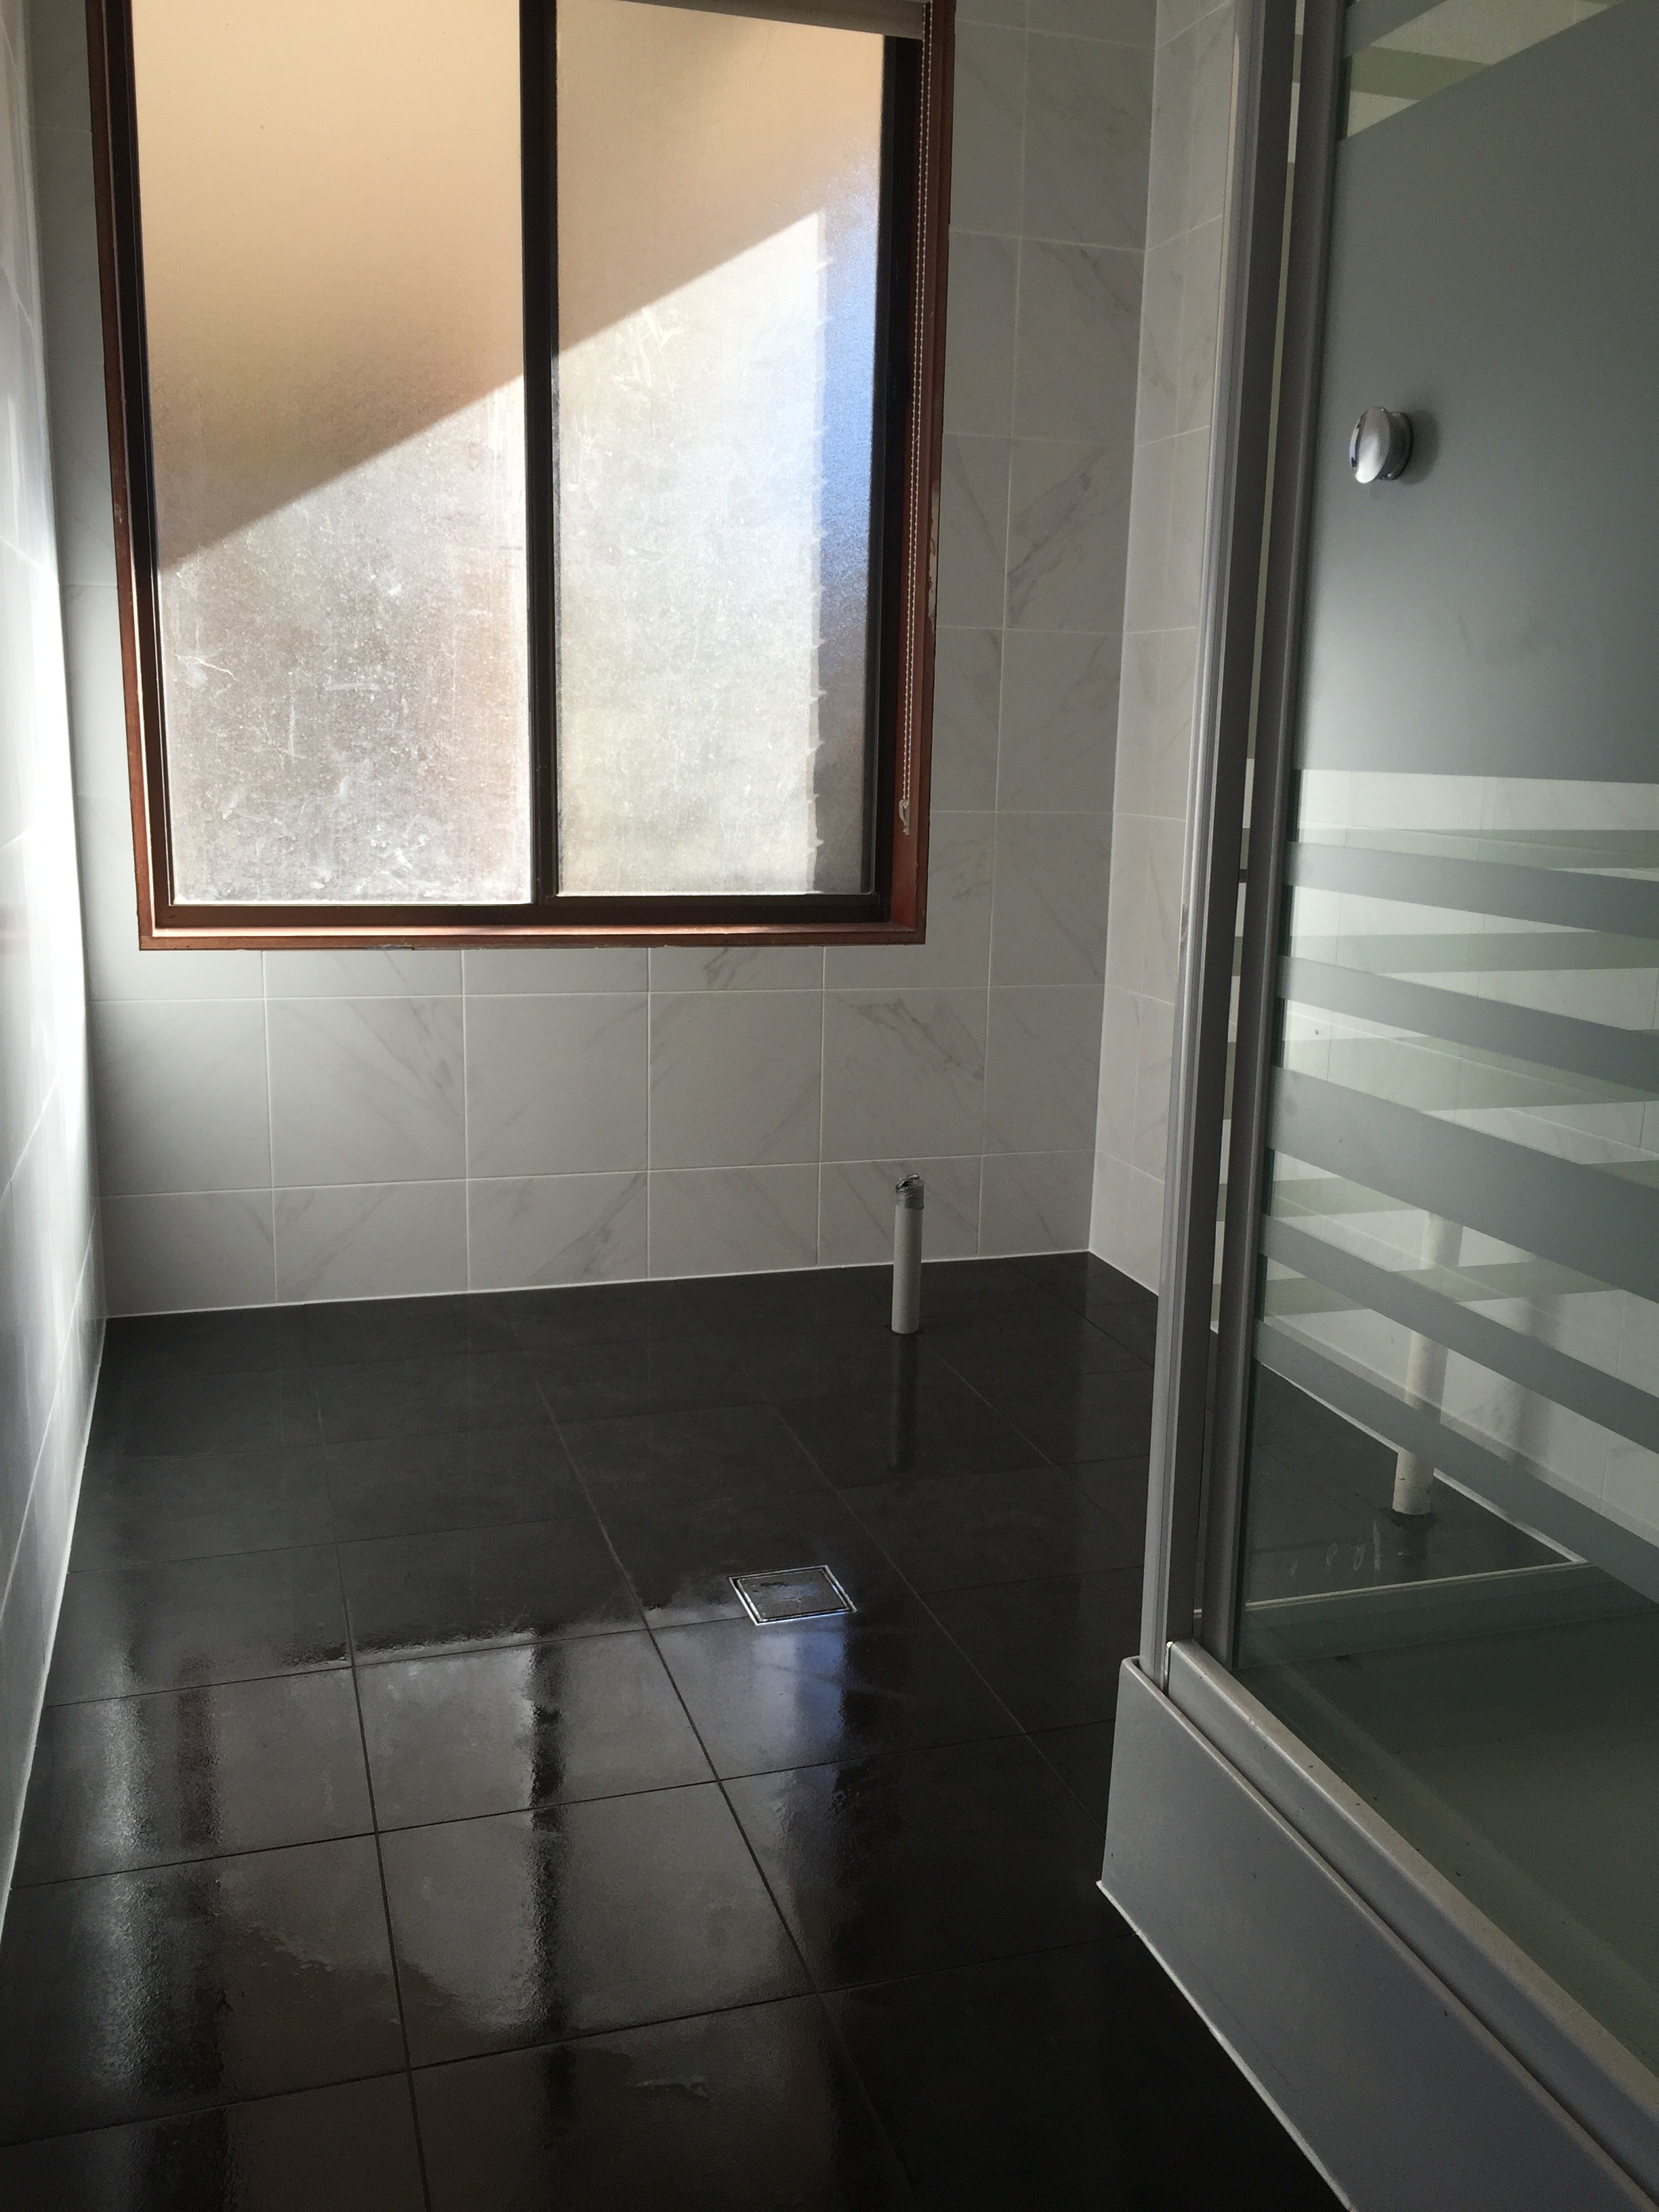 Trott Park Bathroom Tiling In Adelaide